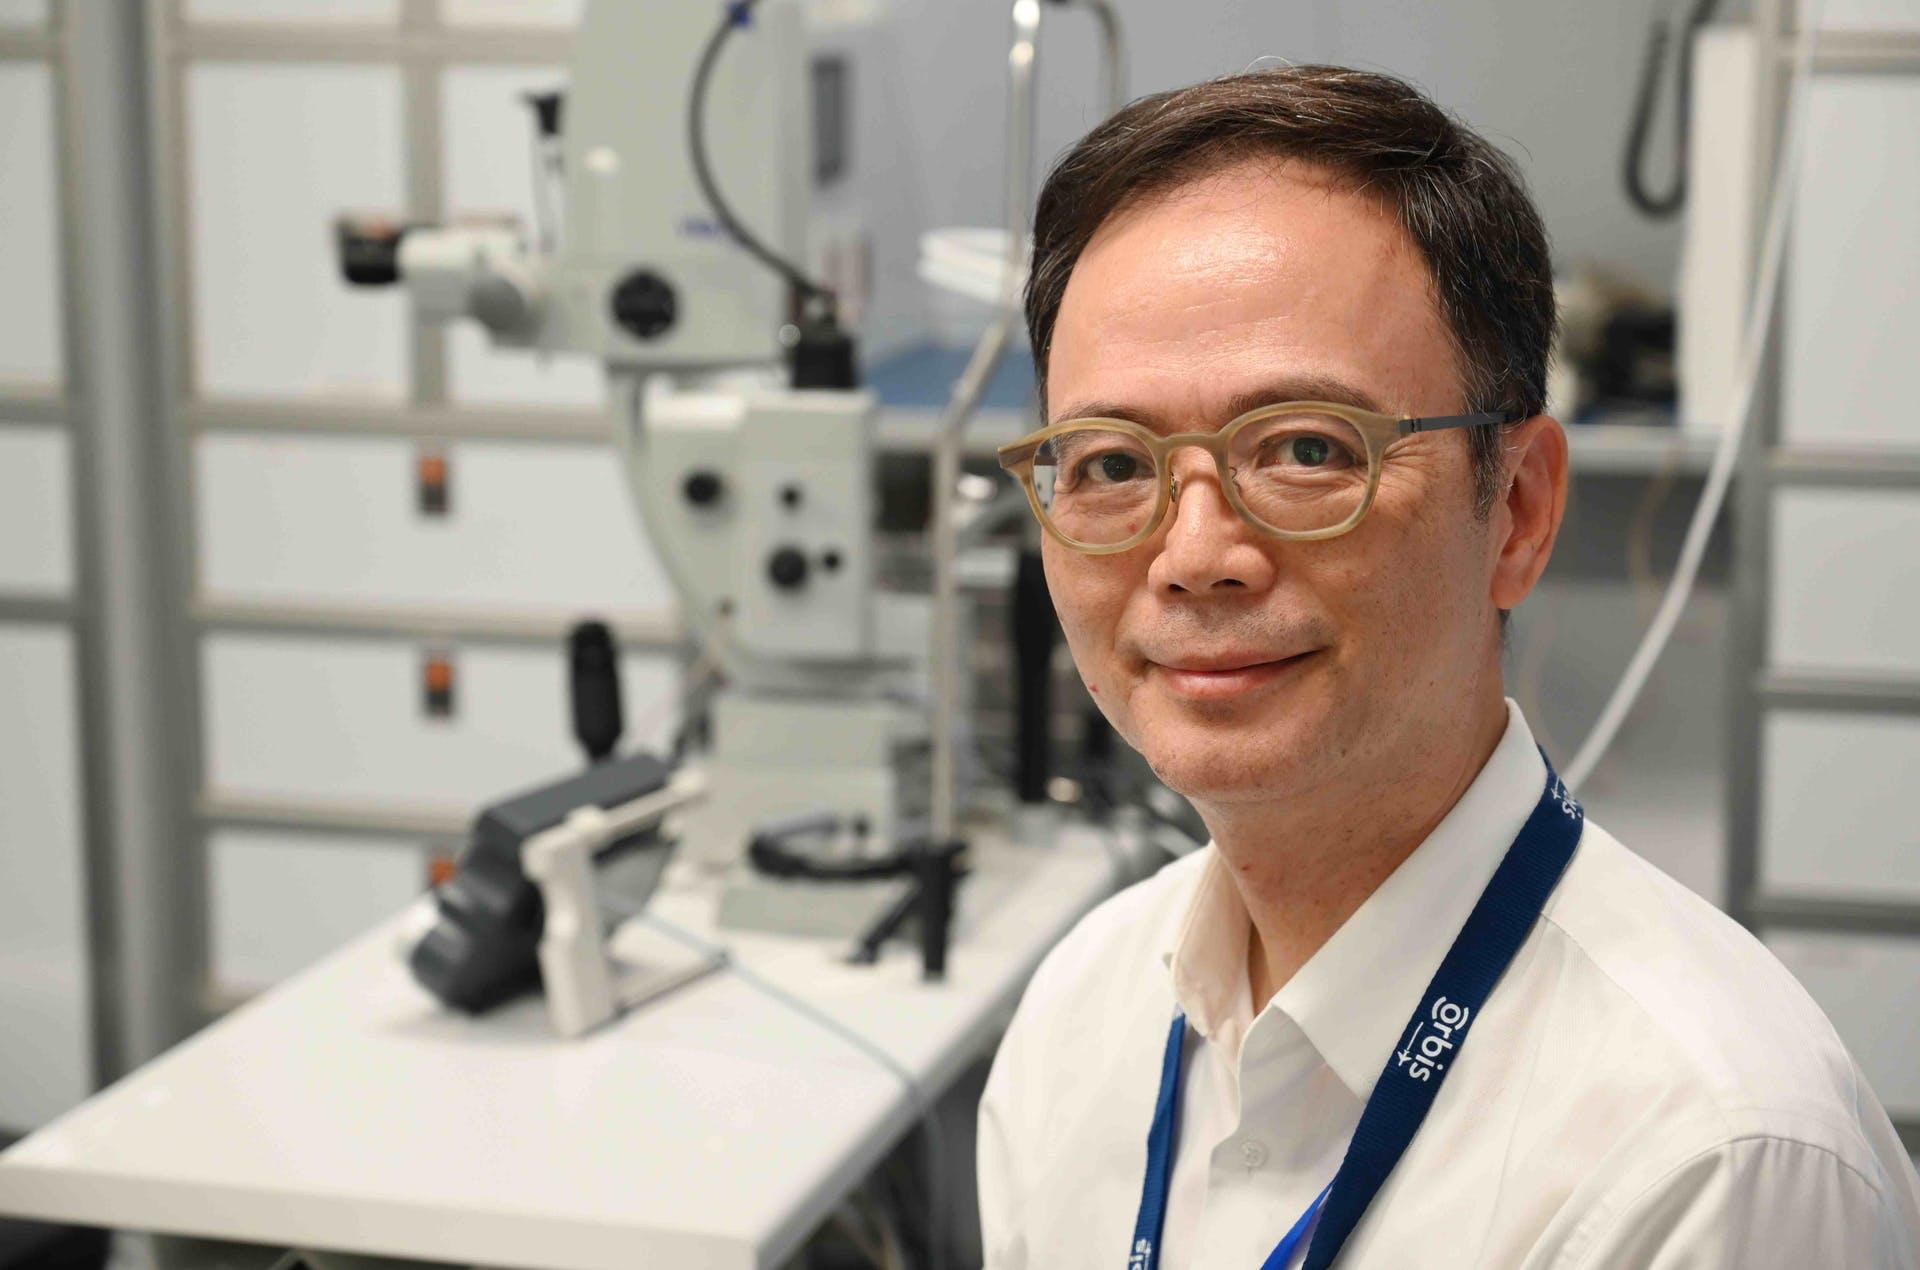 Orbis Flying Eye Hospital Volunteer Faculty Dr. Wai Ching Lam was impressed with the enthusiasm of local partners in Vietnam